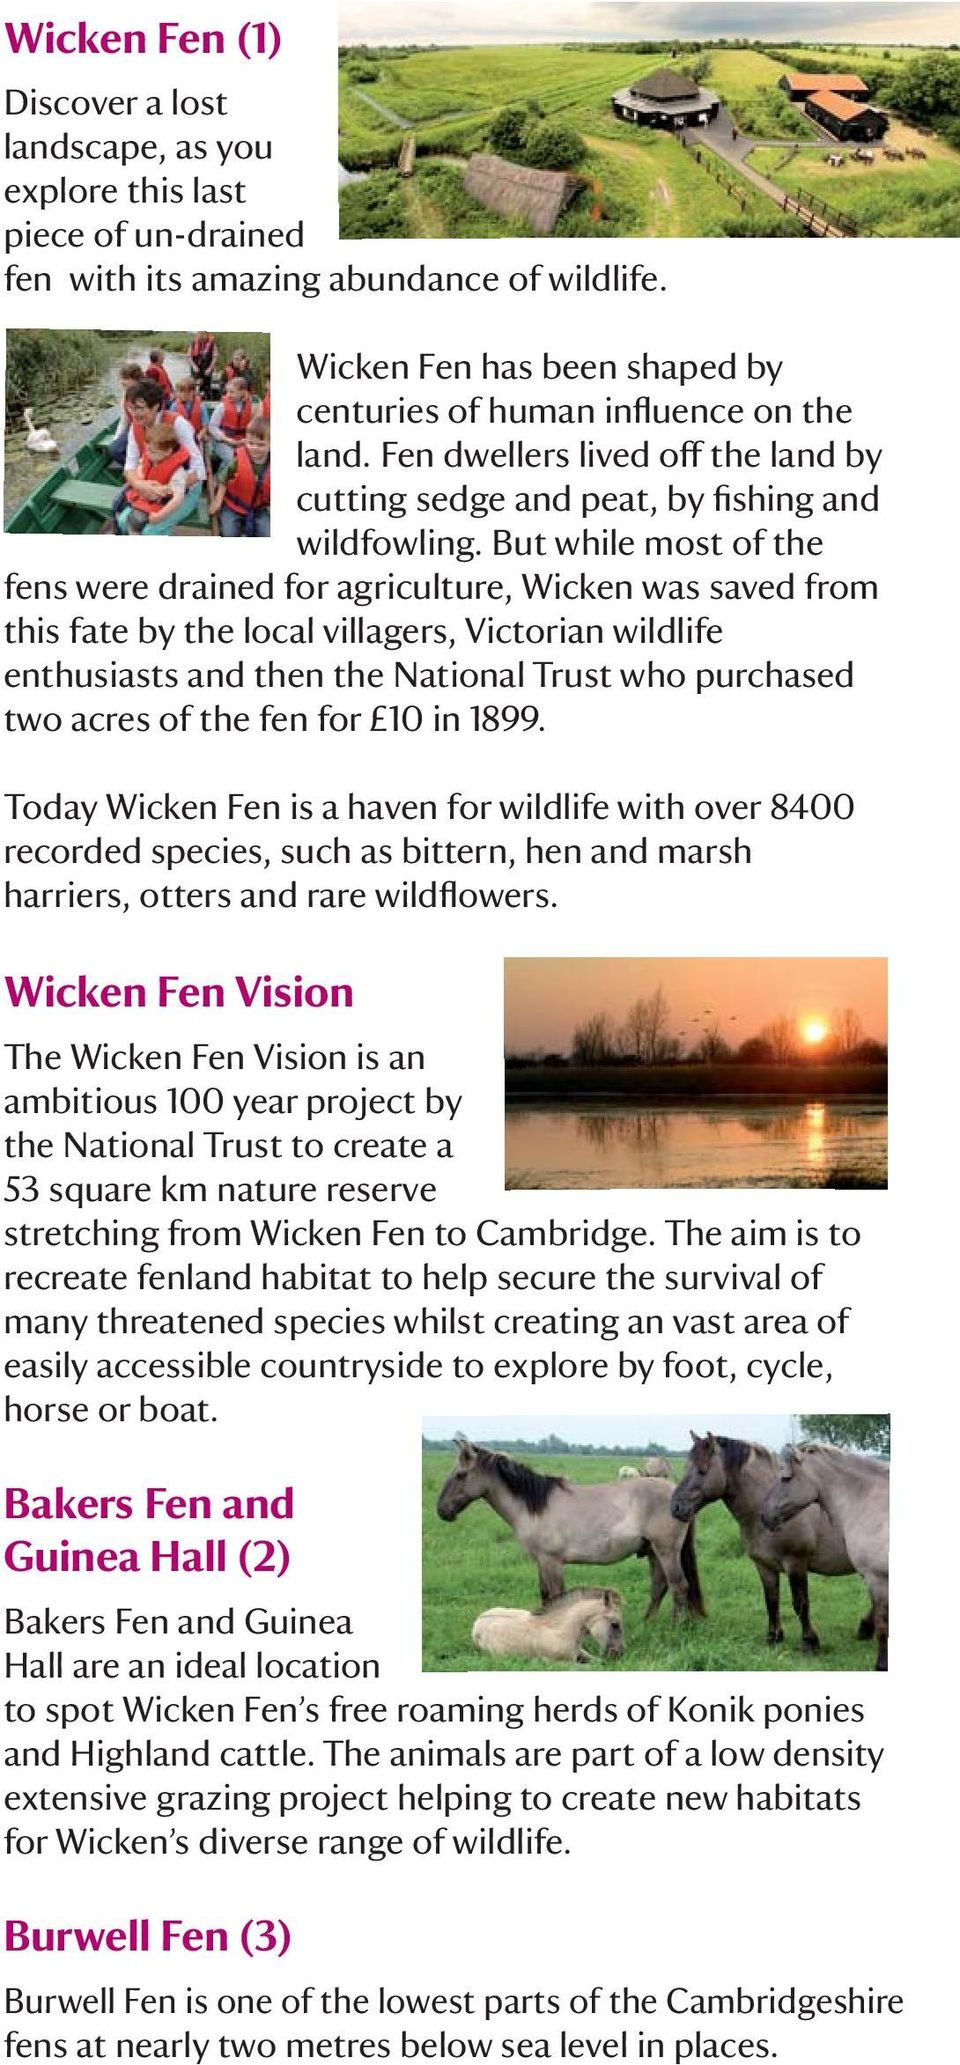 But while most of the fens were drained for agriculture, Wicken was saved from this fate by the local villagers, Victorian wildlife enthusiasts and then the National Trust who purchased two acres of